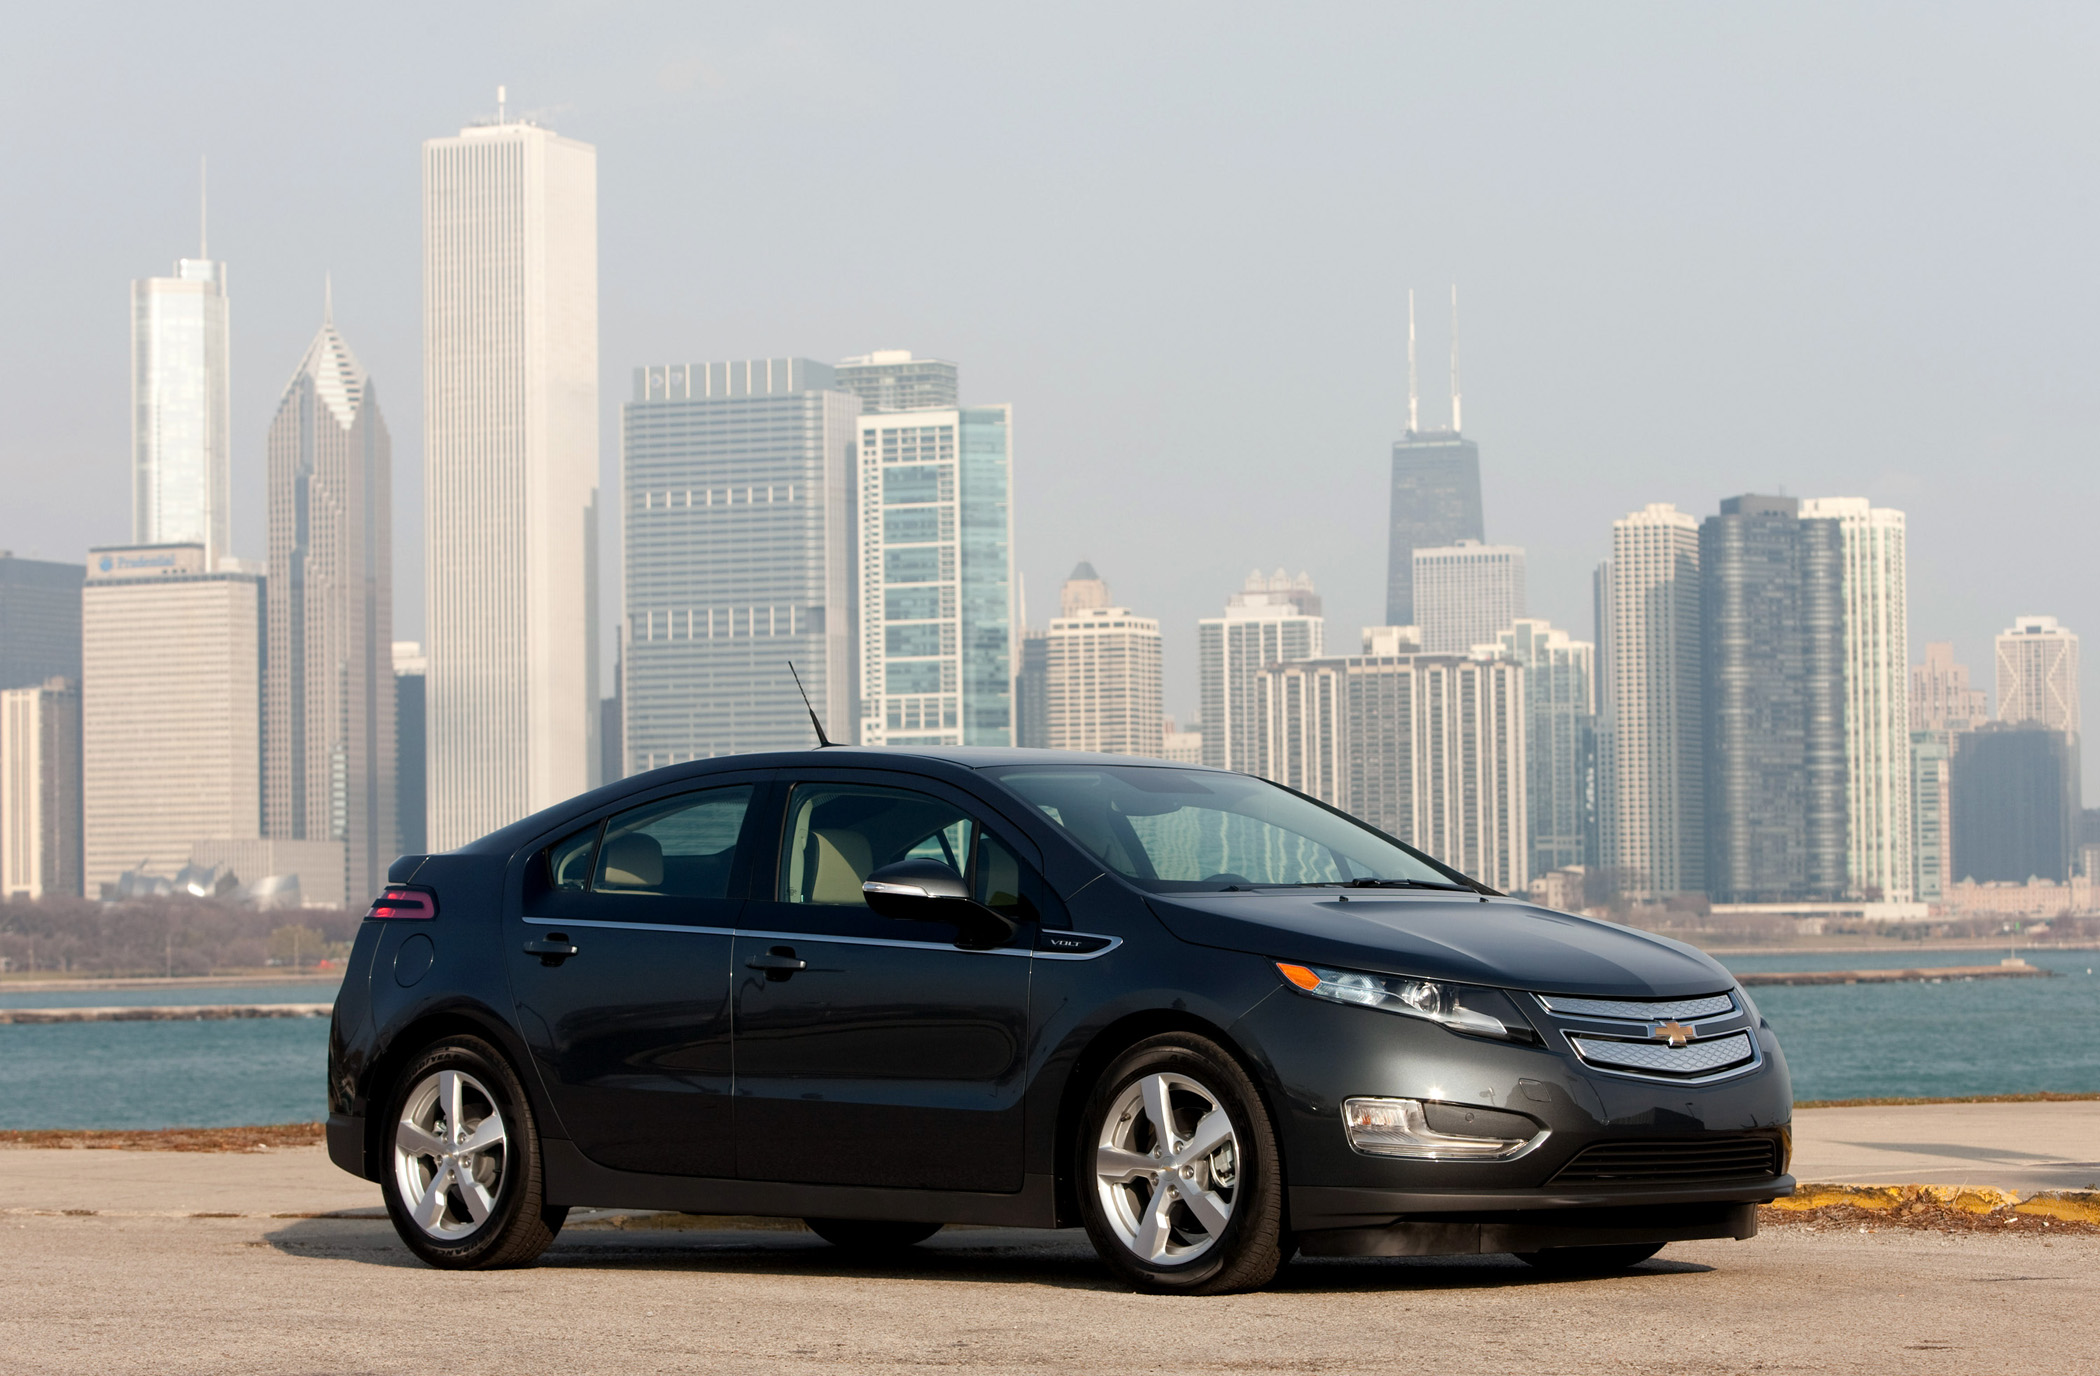 Manufacturer photo the chevrolet volt is powered by gm s revolutionary voltec propulsion system consisting